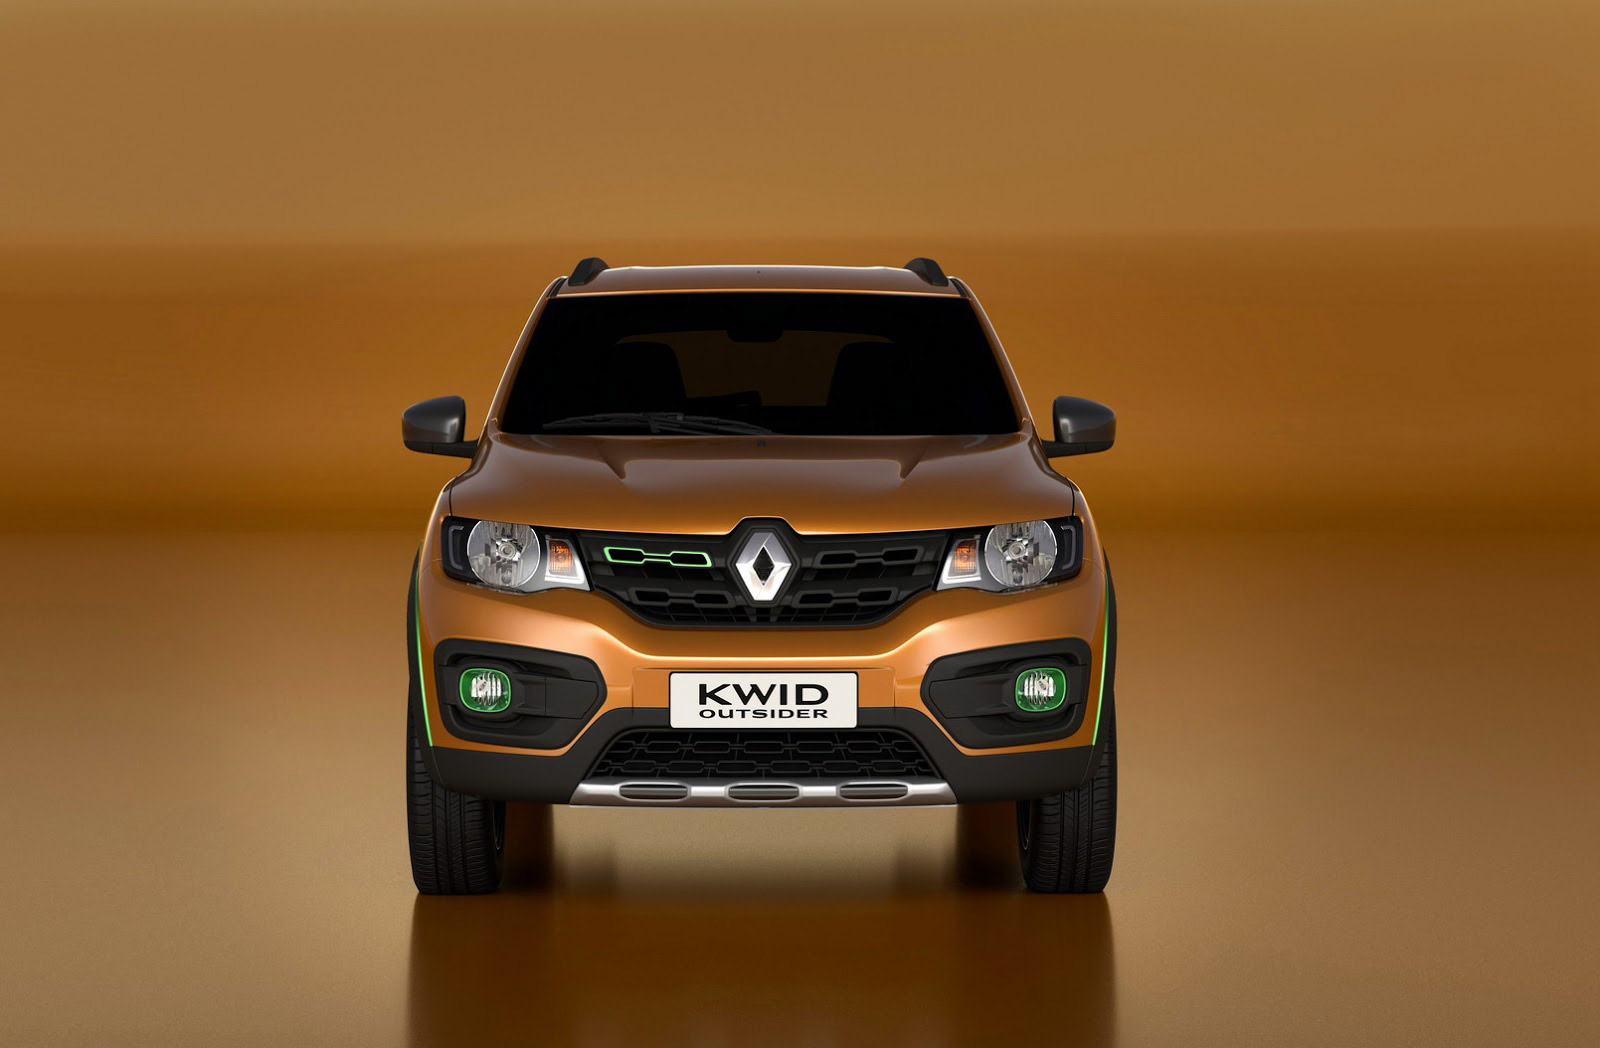 2018 renault kwid. wonderful kwid to 2018 renault kwid